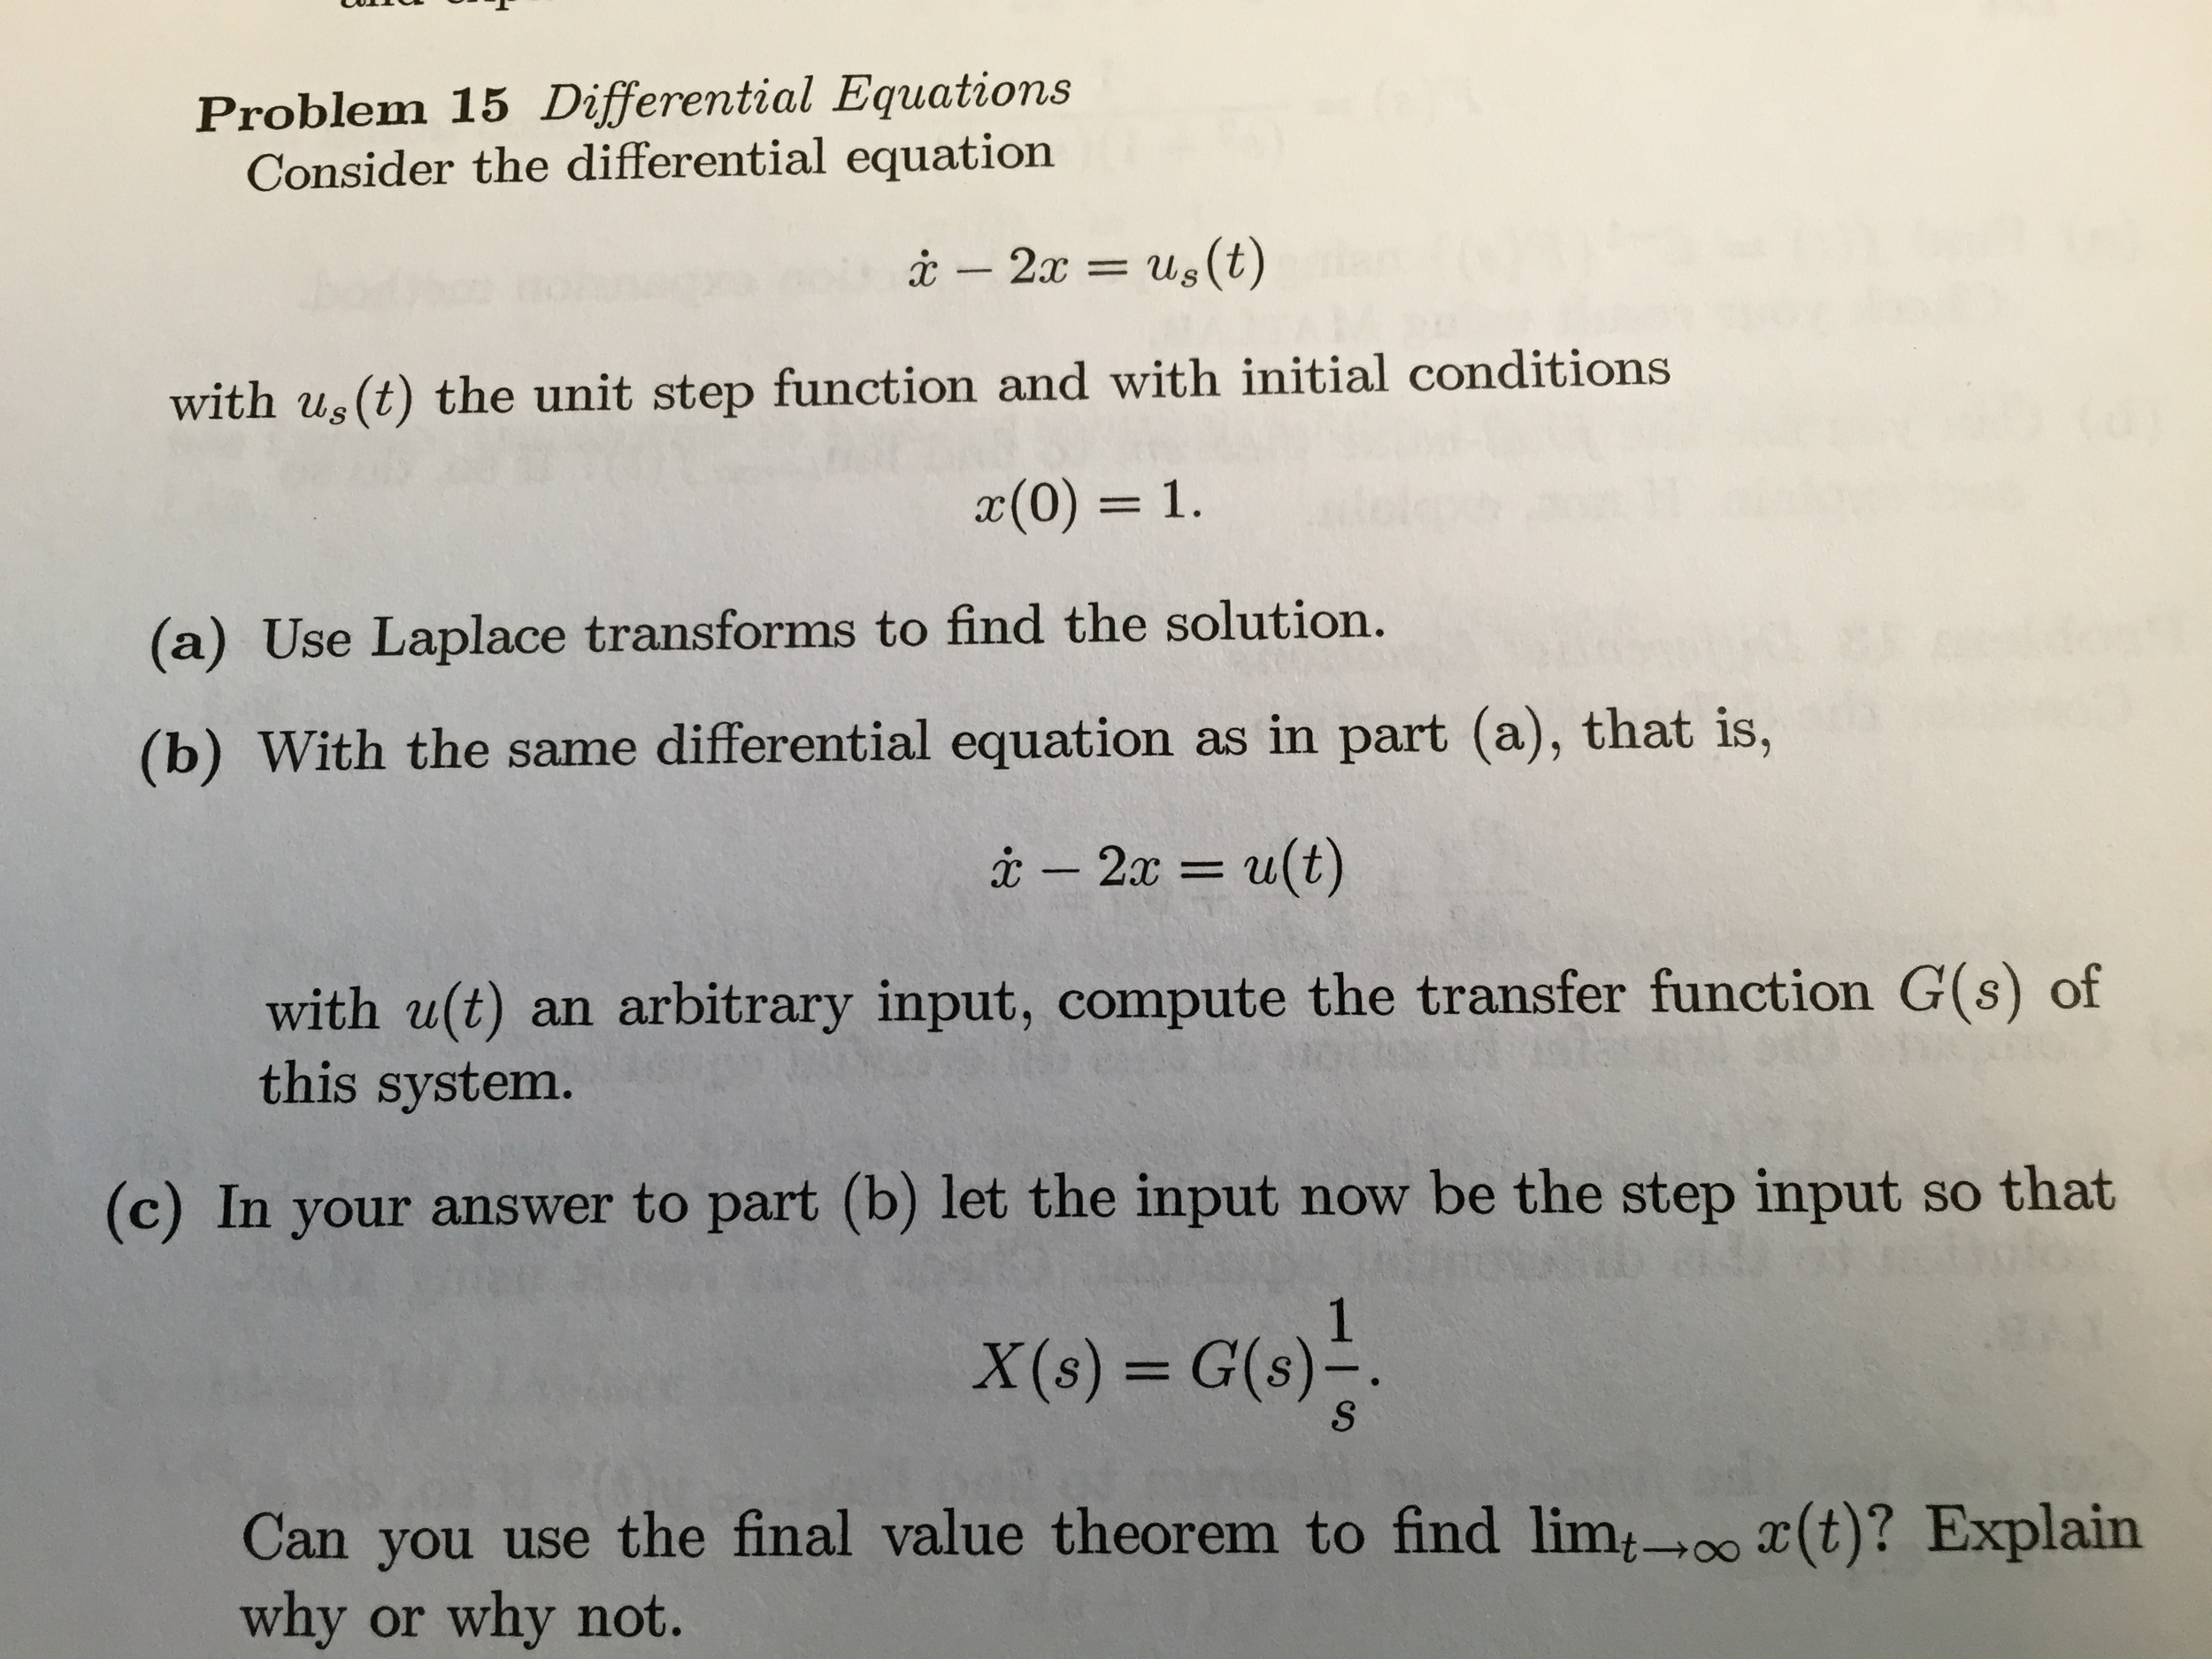 mat114 multivariable calculus and differential equations Calculus 2: multivariable and differential equations short name: ems-cal2 sits code: buem001s5 credits: 30 credits level: 5 lecturer(s): department of economics, mathematics and statistics.